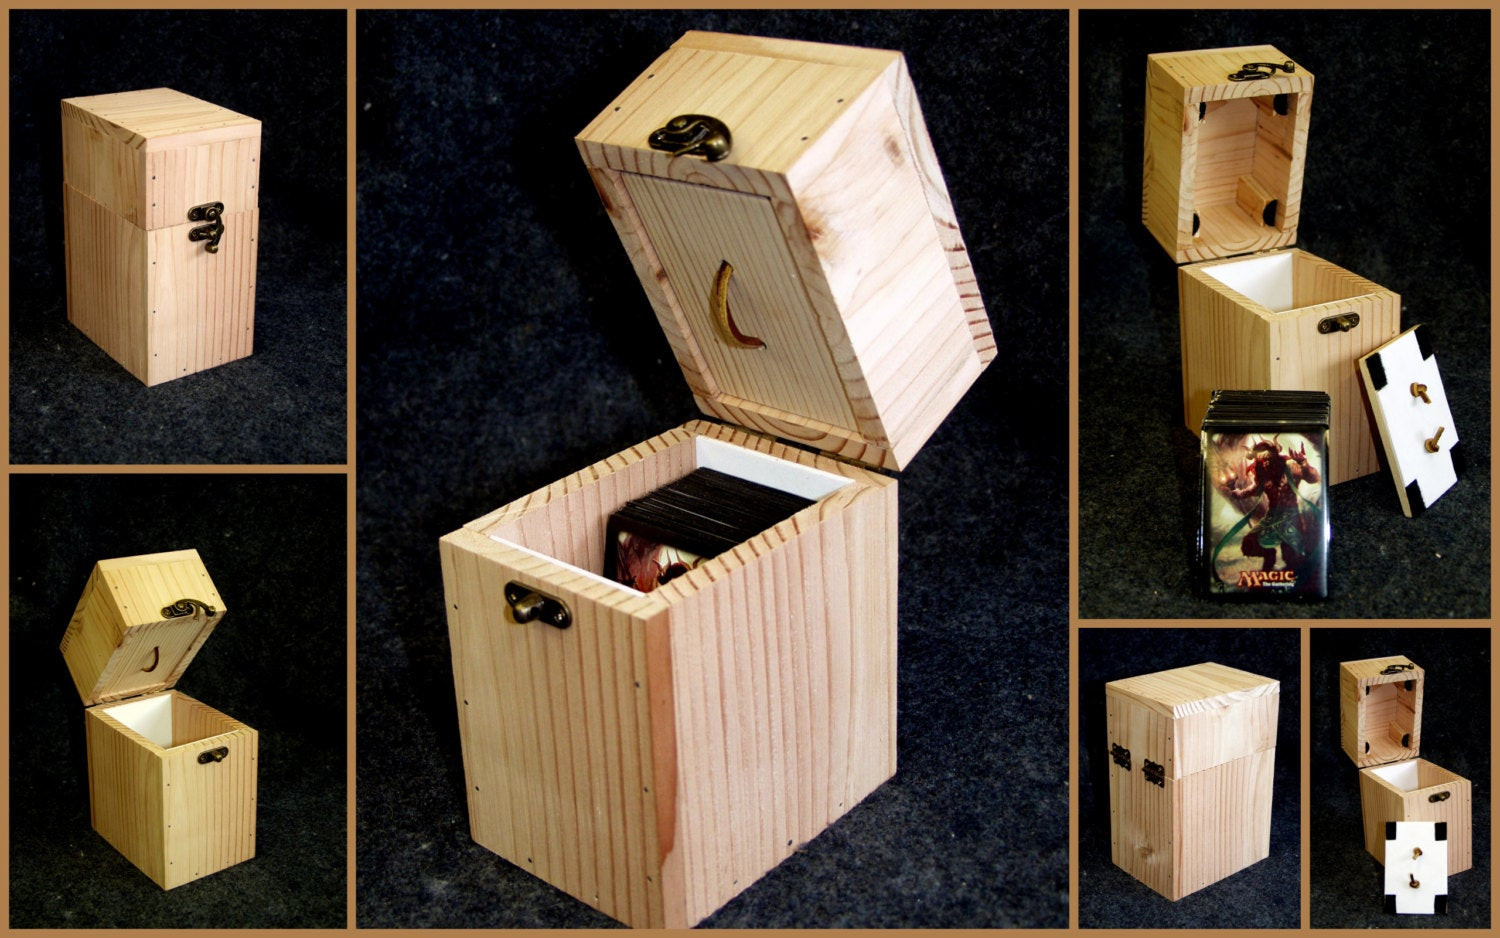 Best ideas about DIY Deck Boxes . Save or Pin Magic The Gathering DIY deck box Now.